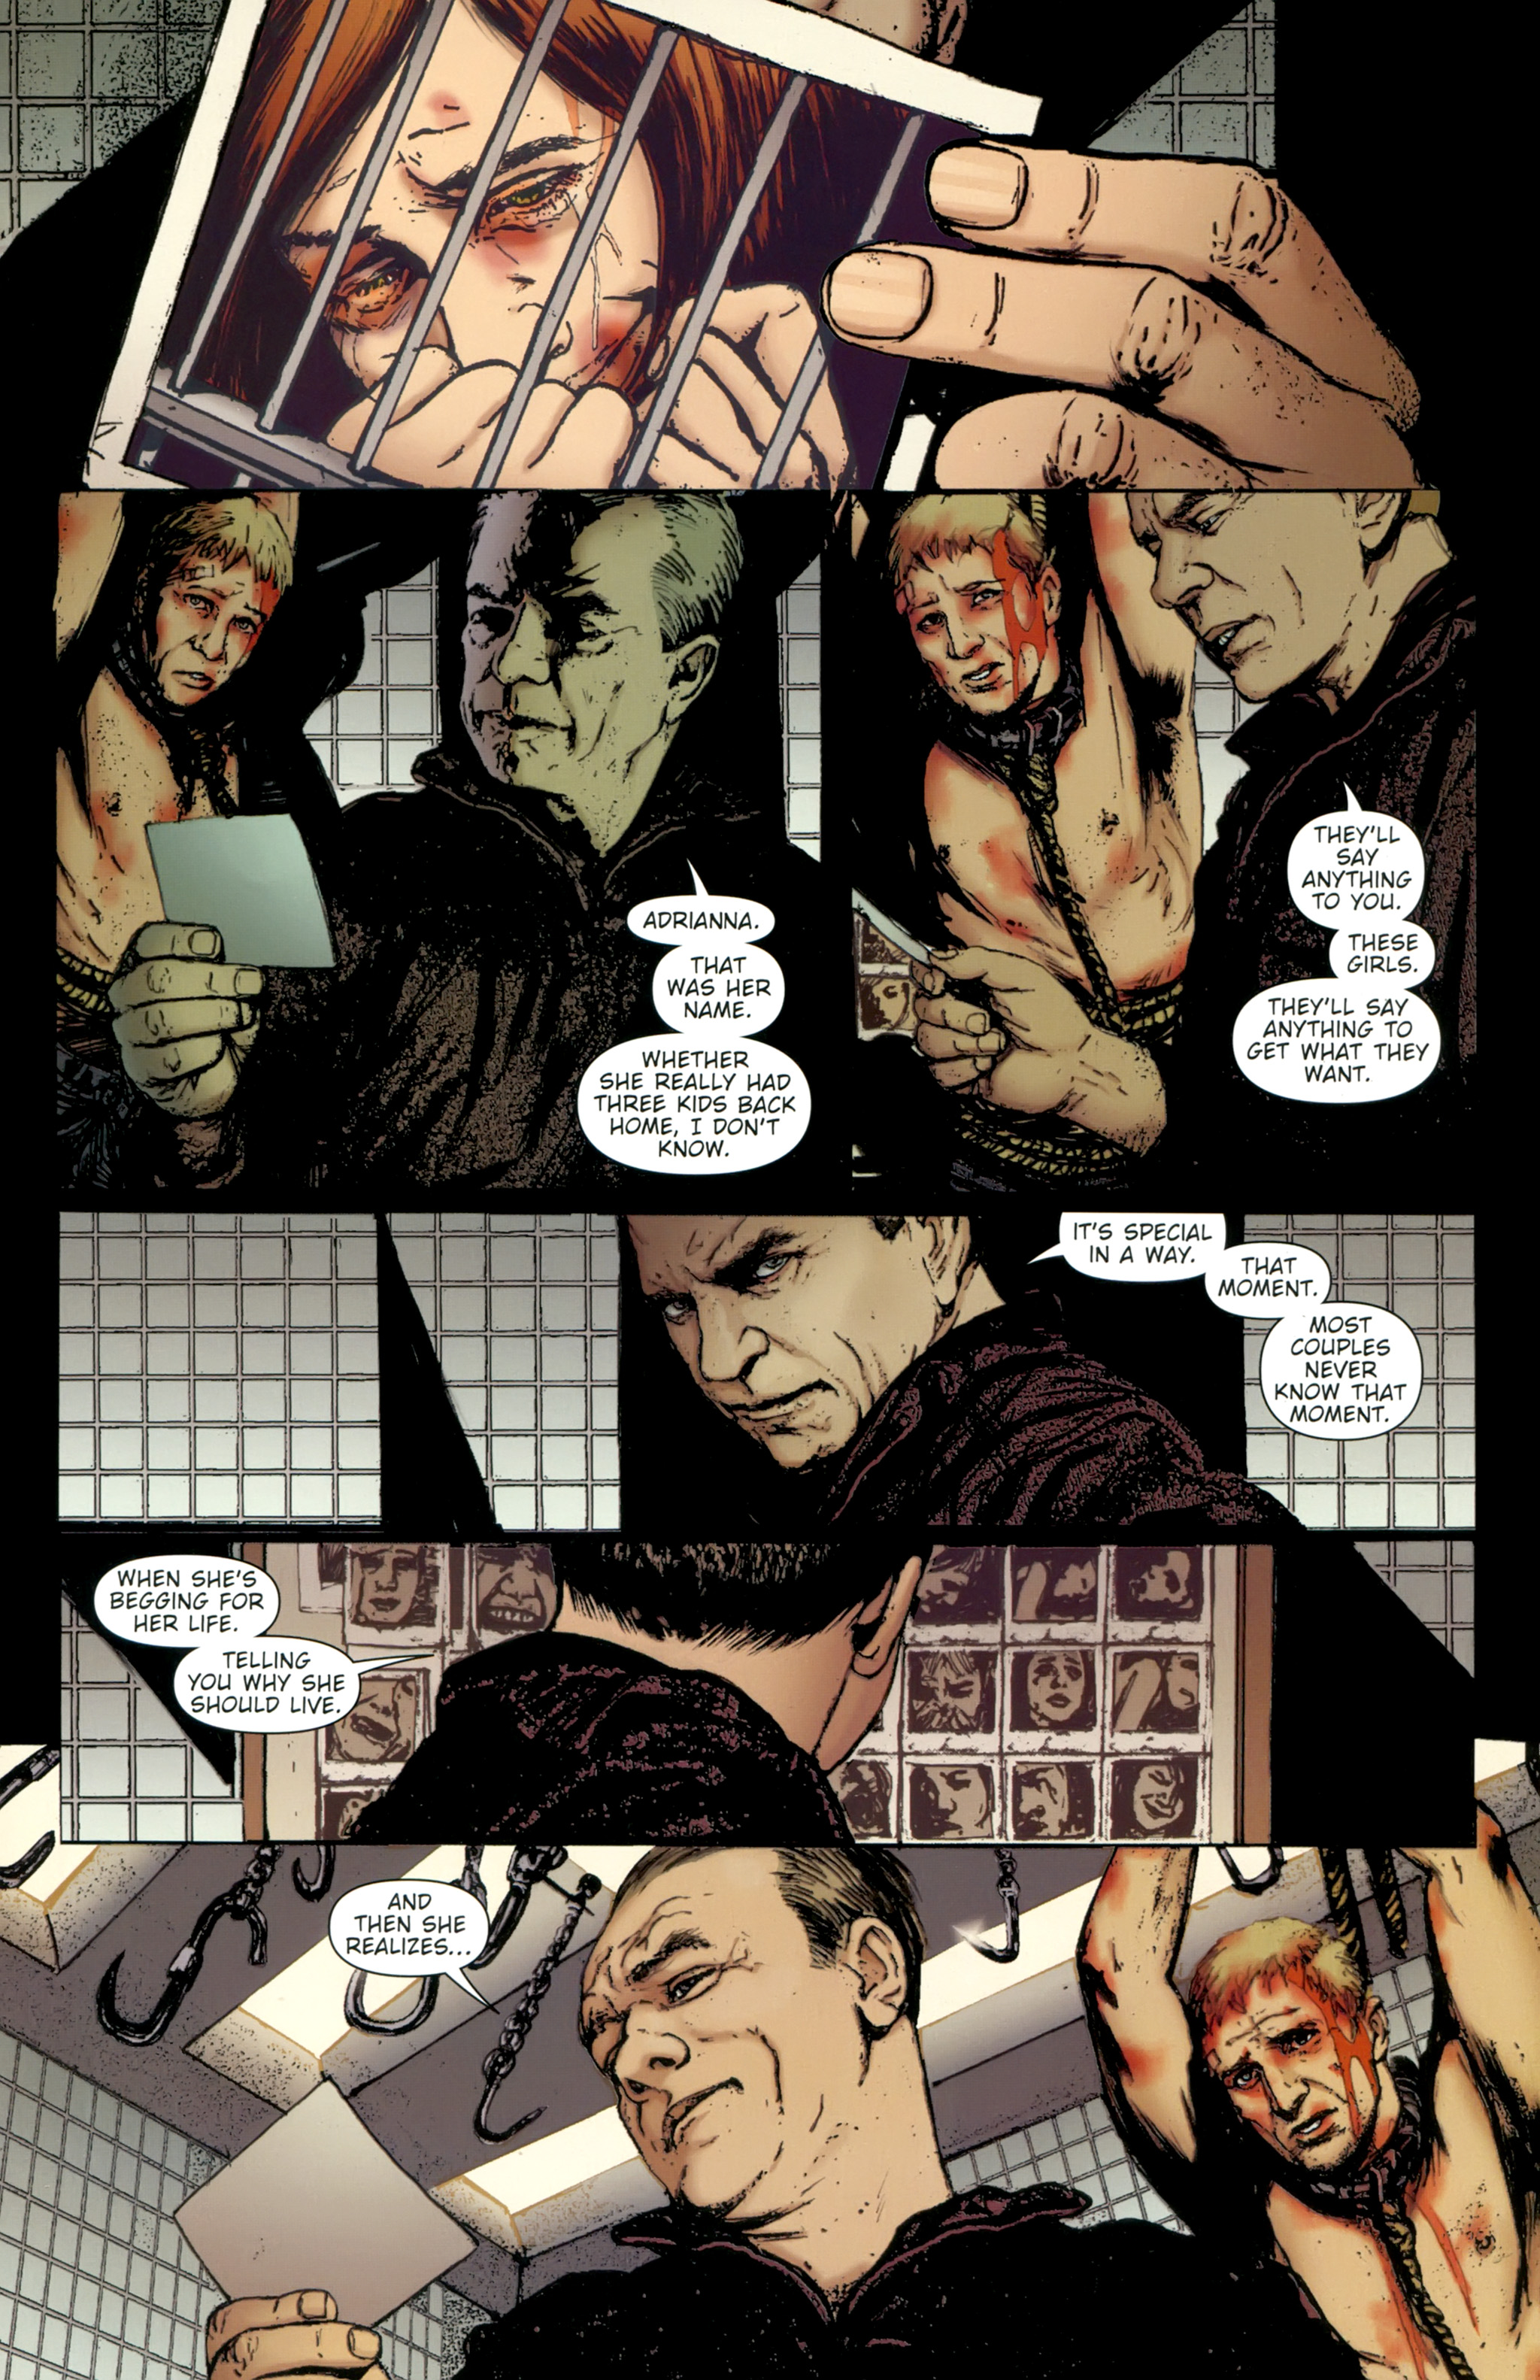 Read online The Girl With the Dragon Tattoo comic -  Issue # TPB 2 - 91